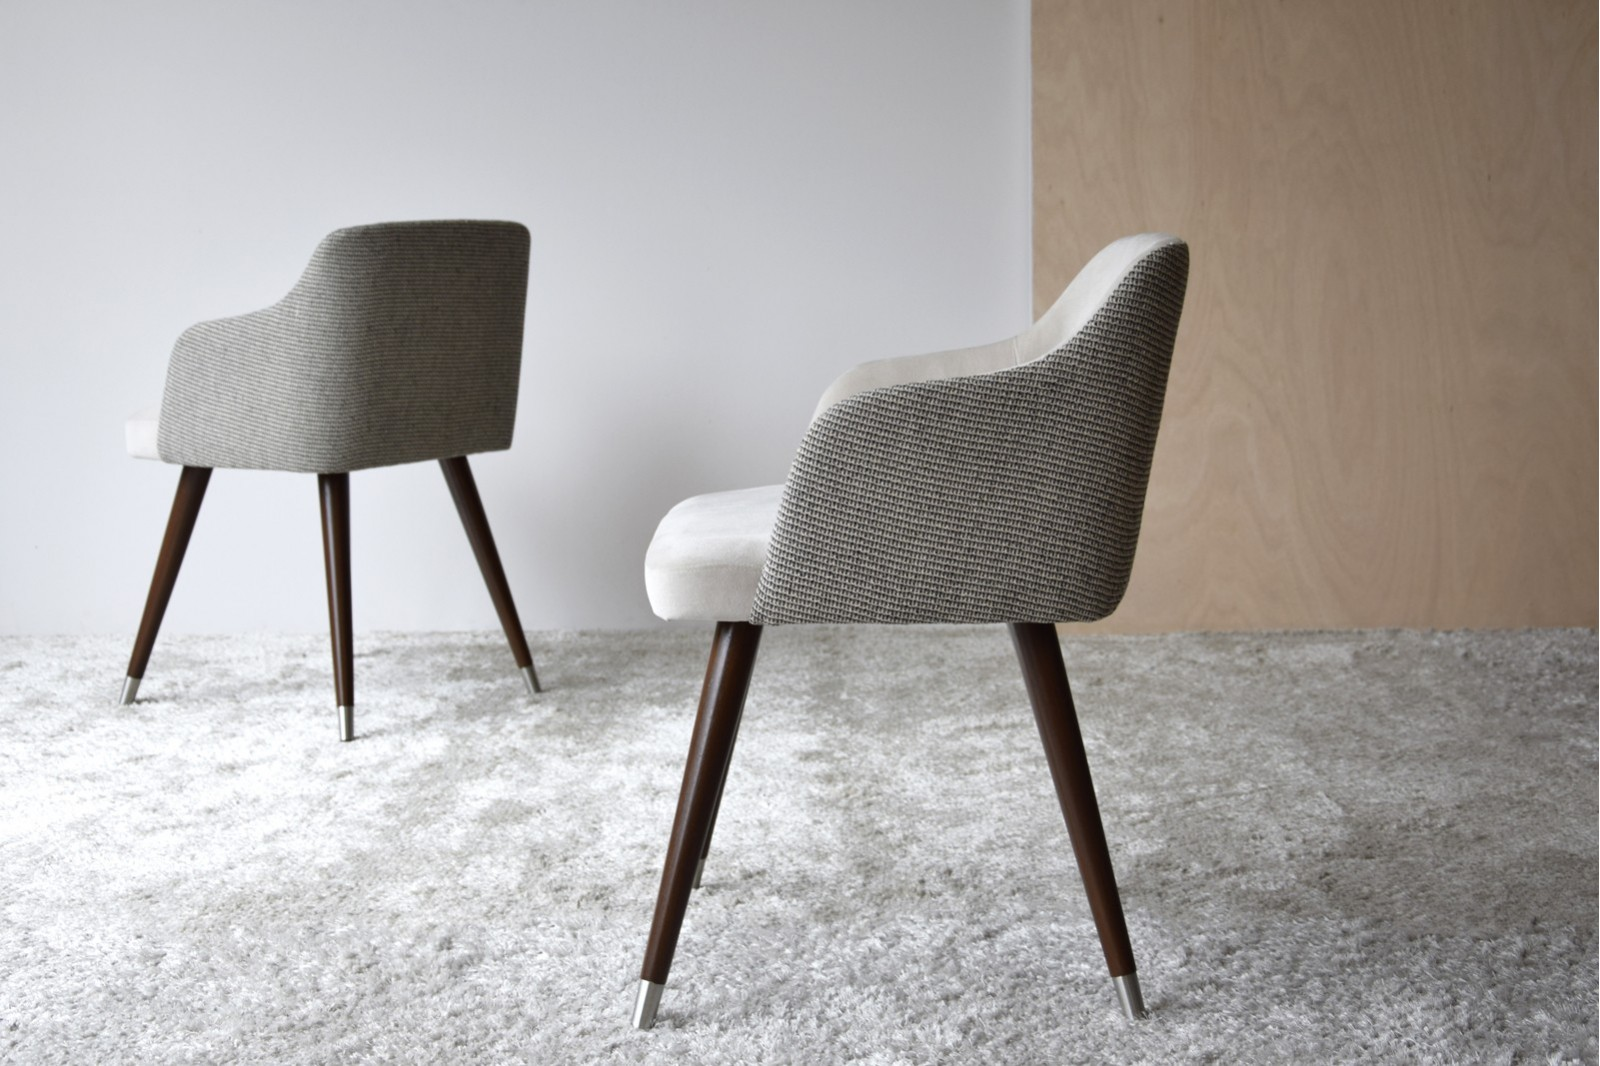 DINING CHAIR. STONE AND GREY COLOR. WOODEN LEGS